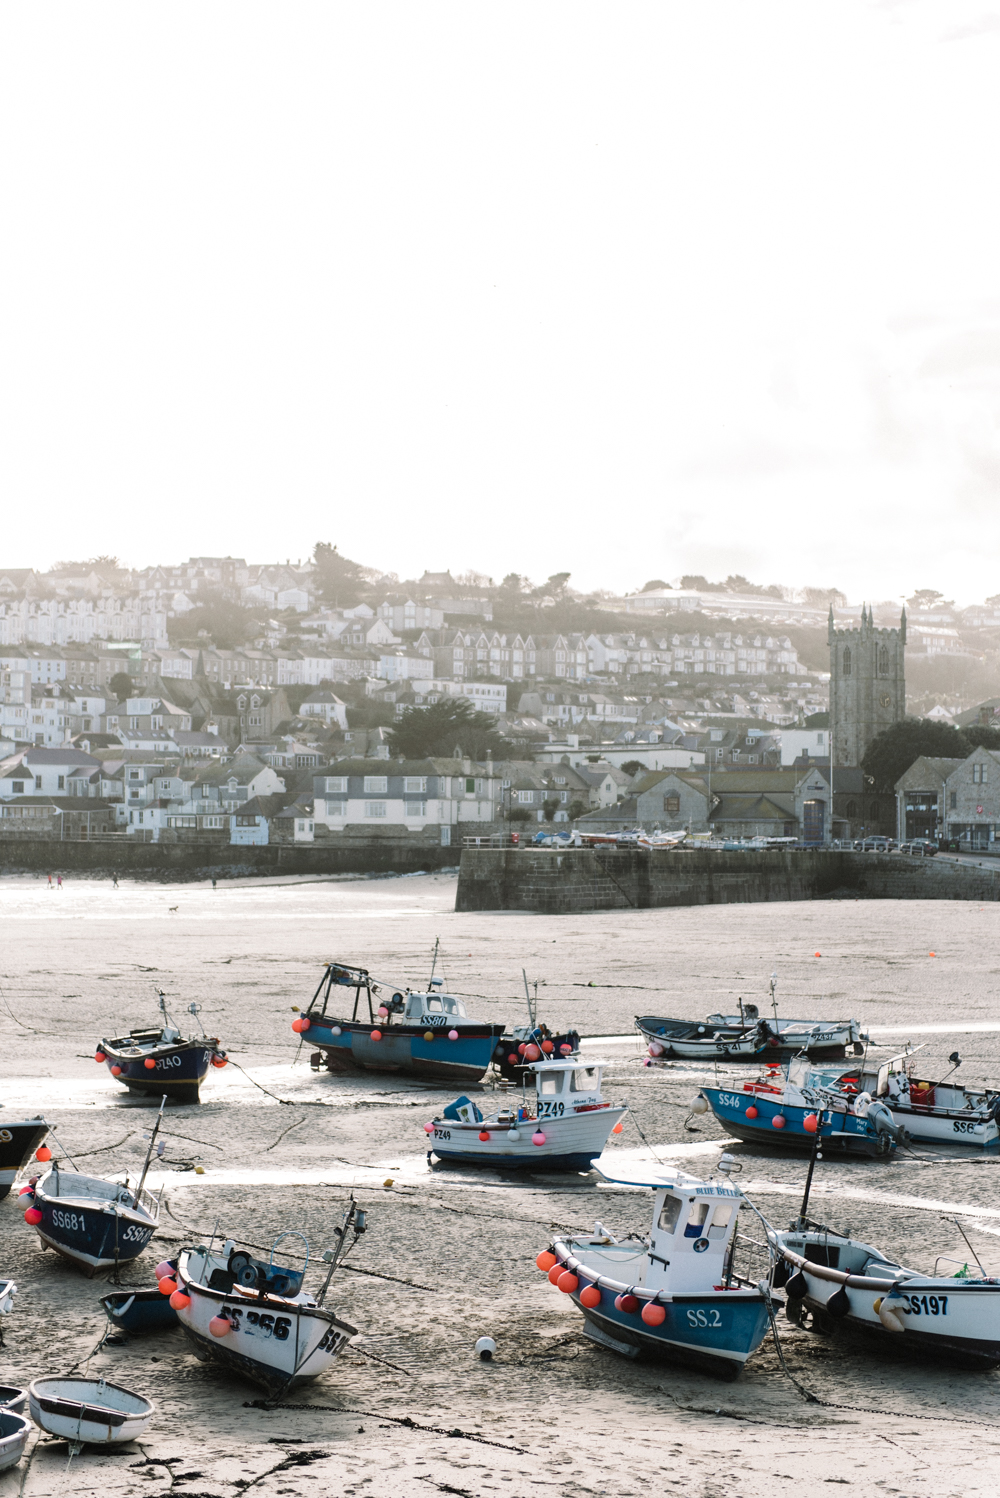 Content Creation for Crew Clothing // www.oliviabossert.com // Cornwall, St Ives, Content, social media, photographer, #socialmedia #contentcreation #crewclothing #freelancephotographer #freelance #socialmediacontent